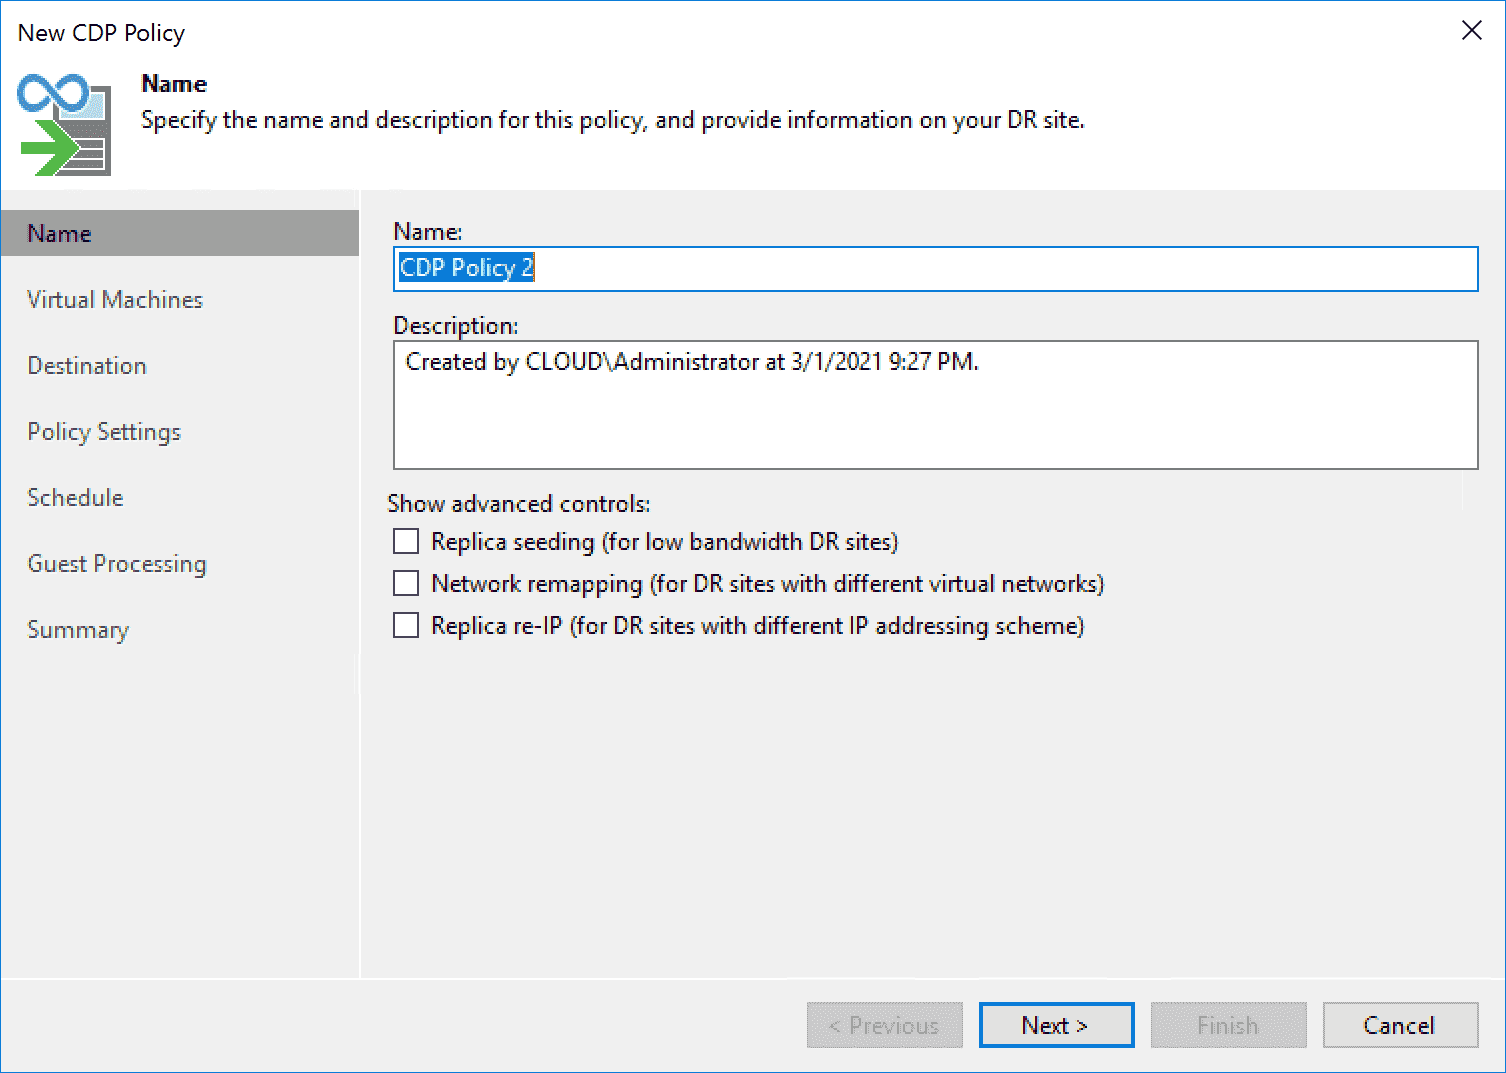 Creating a new Veeam Backup Replication v11 CDP policy for CDP